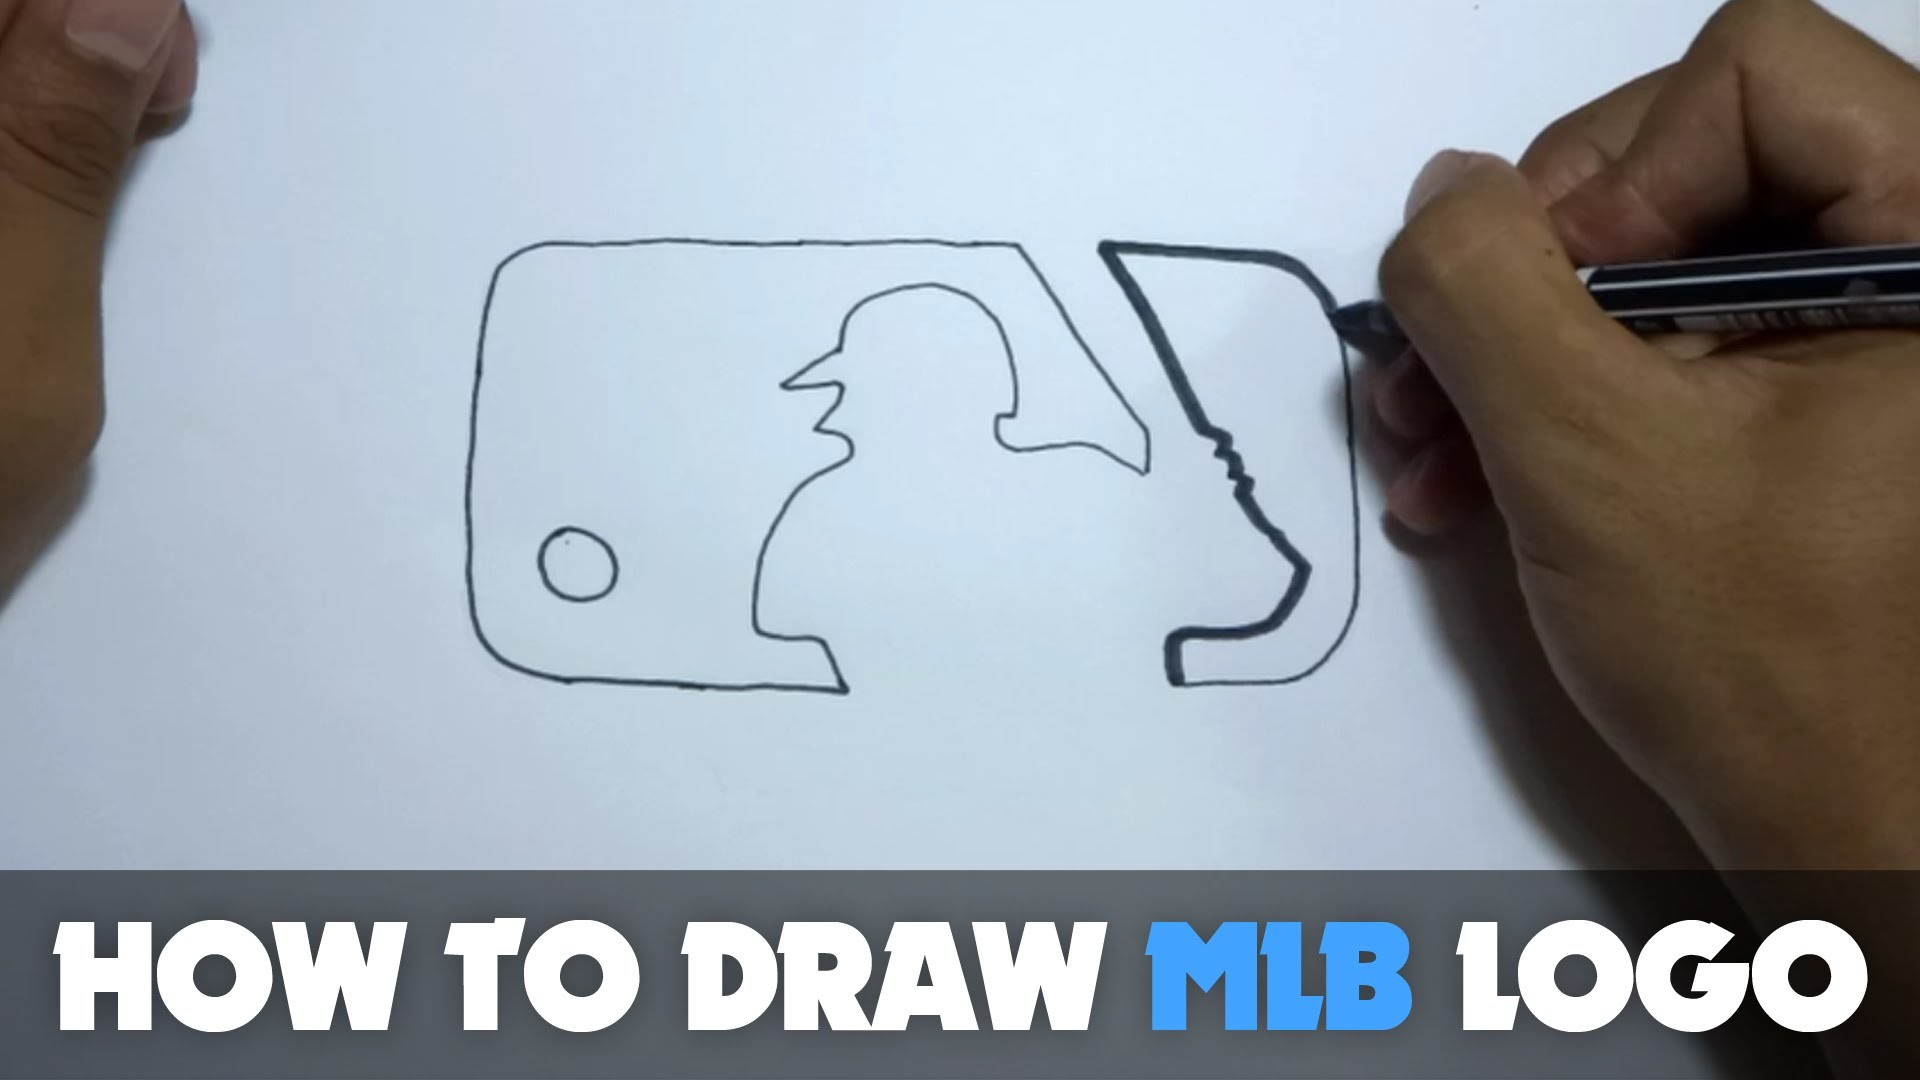 How to Draw a Cartoon - Major League Baseball Logo (Tutorial Step by Step)